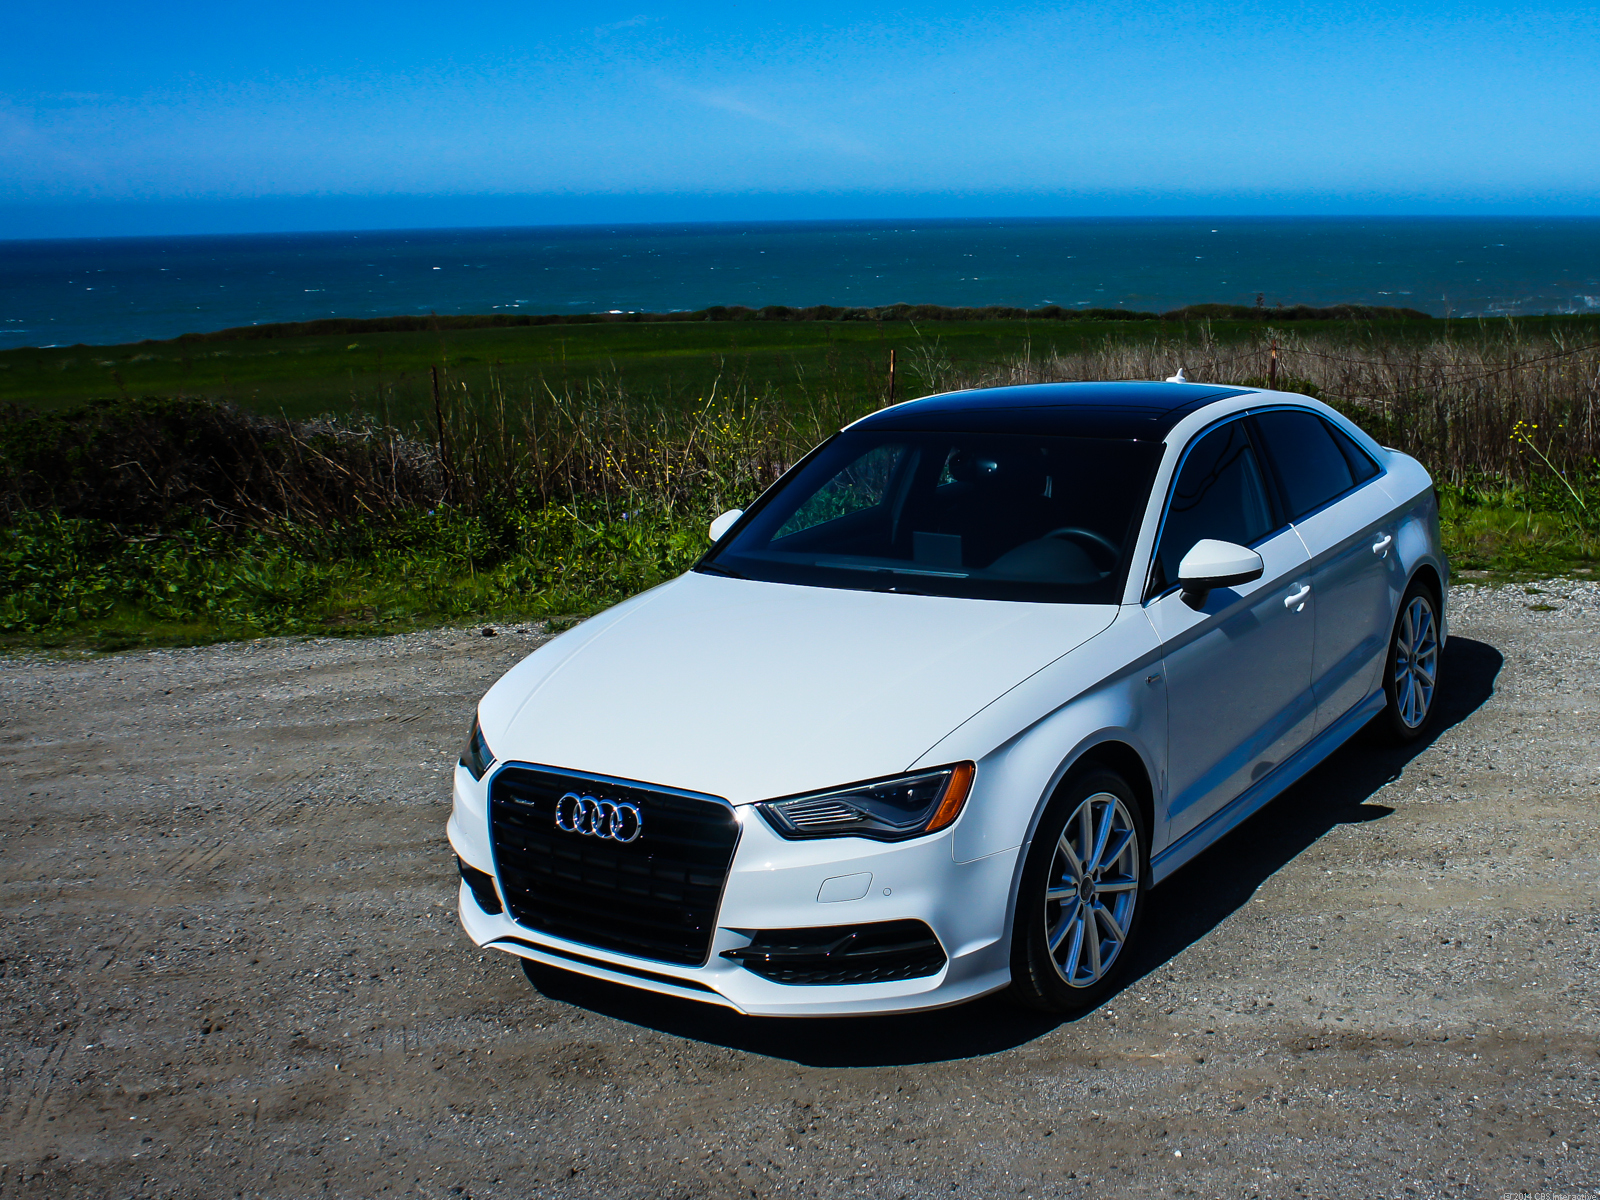 The 2015 Audi A3 evolves from a compact hatchback into to an high-tech sedan with 4G LTE connectivity and Nvidia-powered tech.